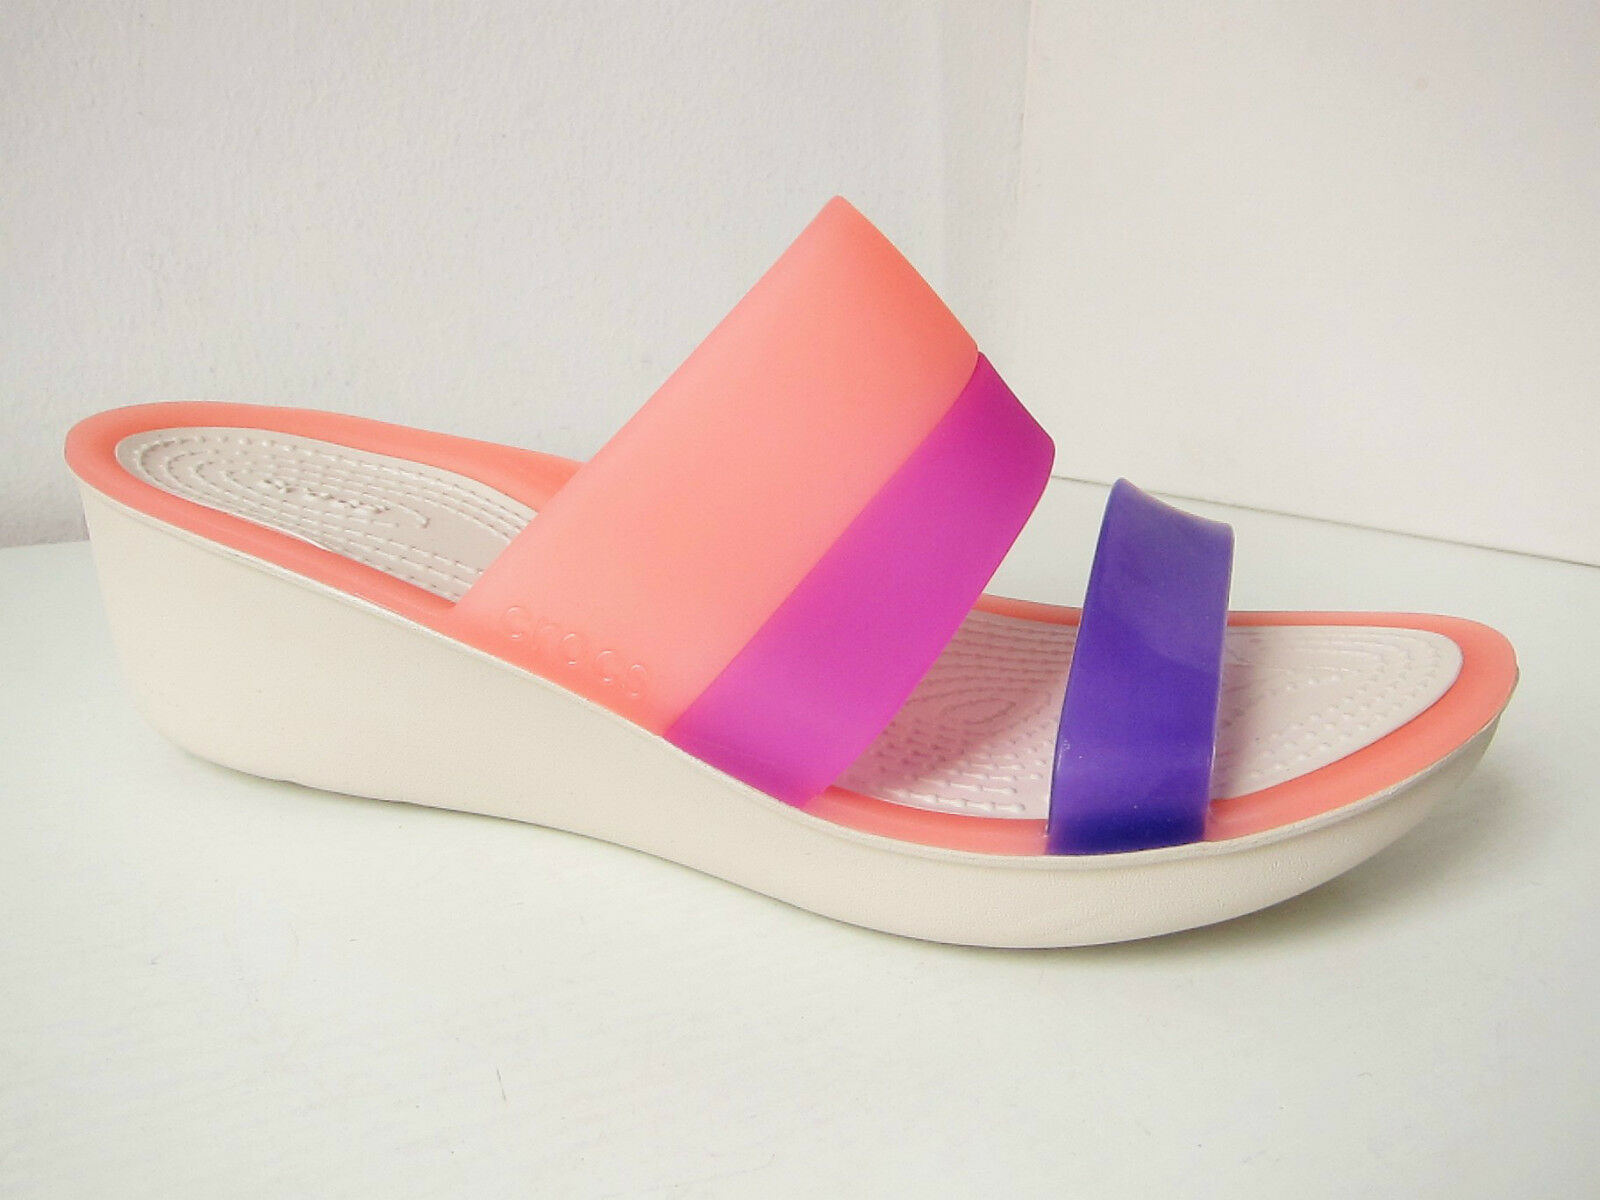 Crocs colorblock wedge sandalia rosa pink lila W 6 - 36 37 sandals Shoes Melon